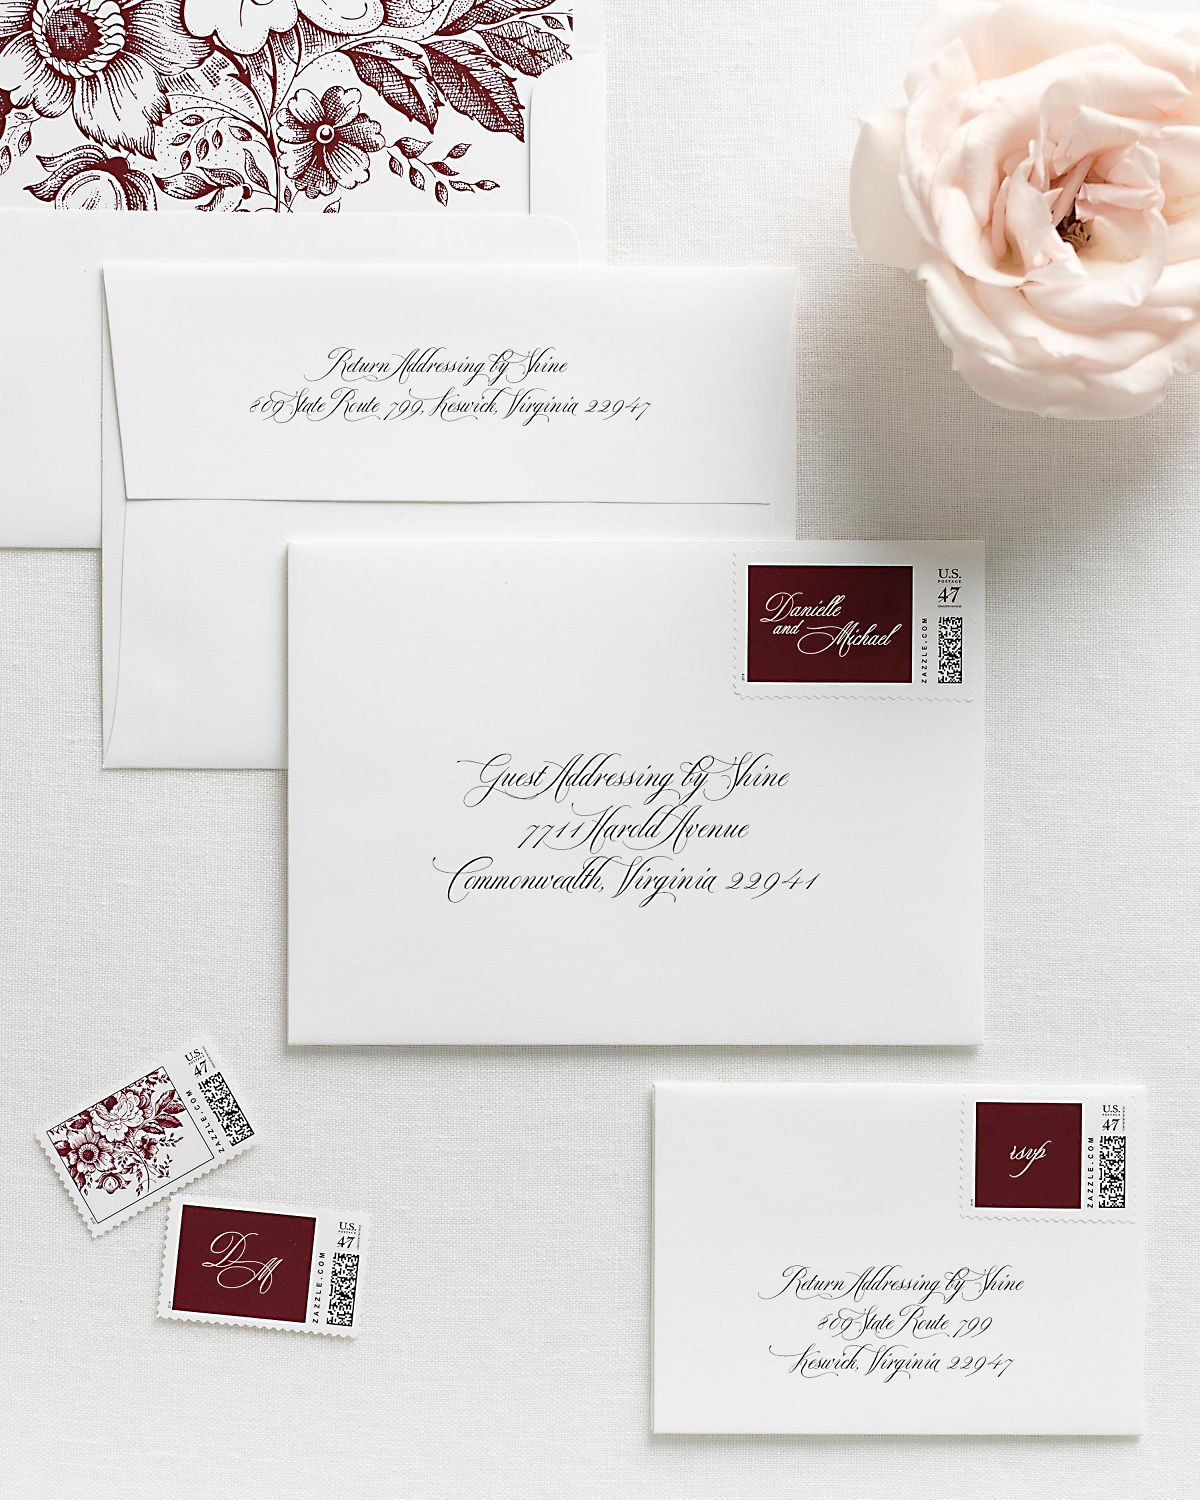 Wedding Invitation Envelopes with Pre-Printed Addresses and Matching Cabernet Personalized Stamps